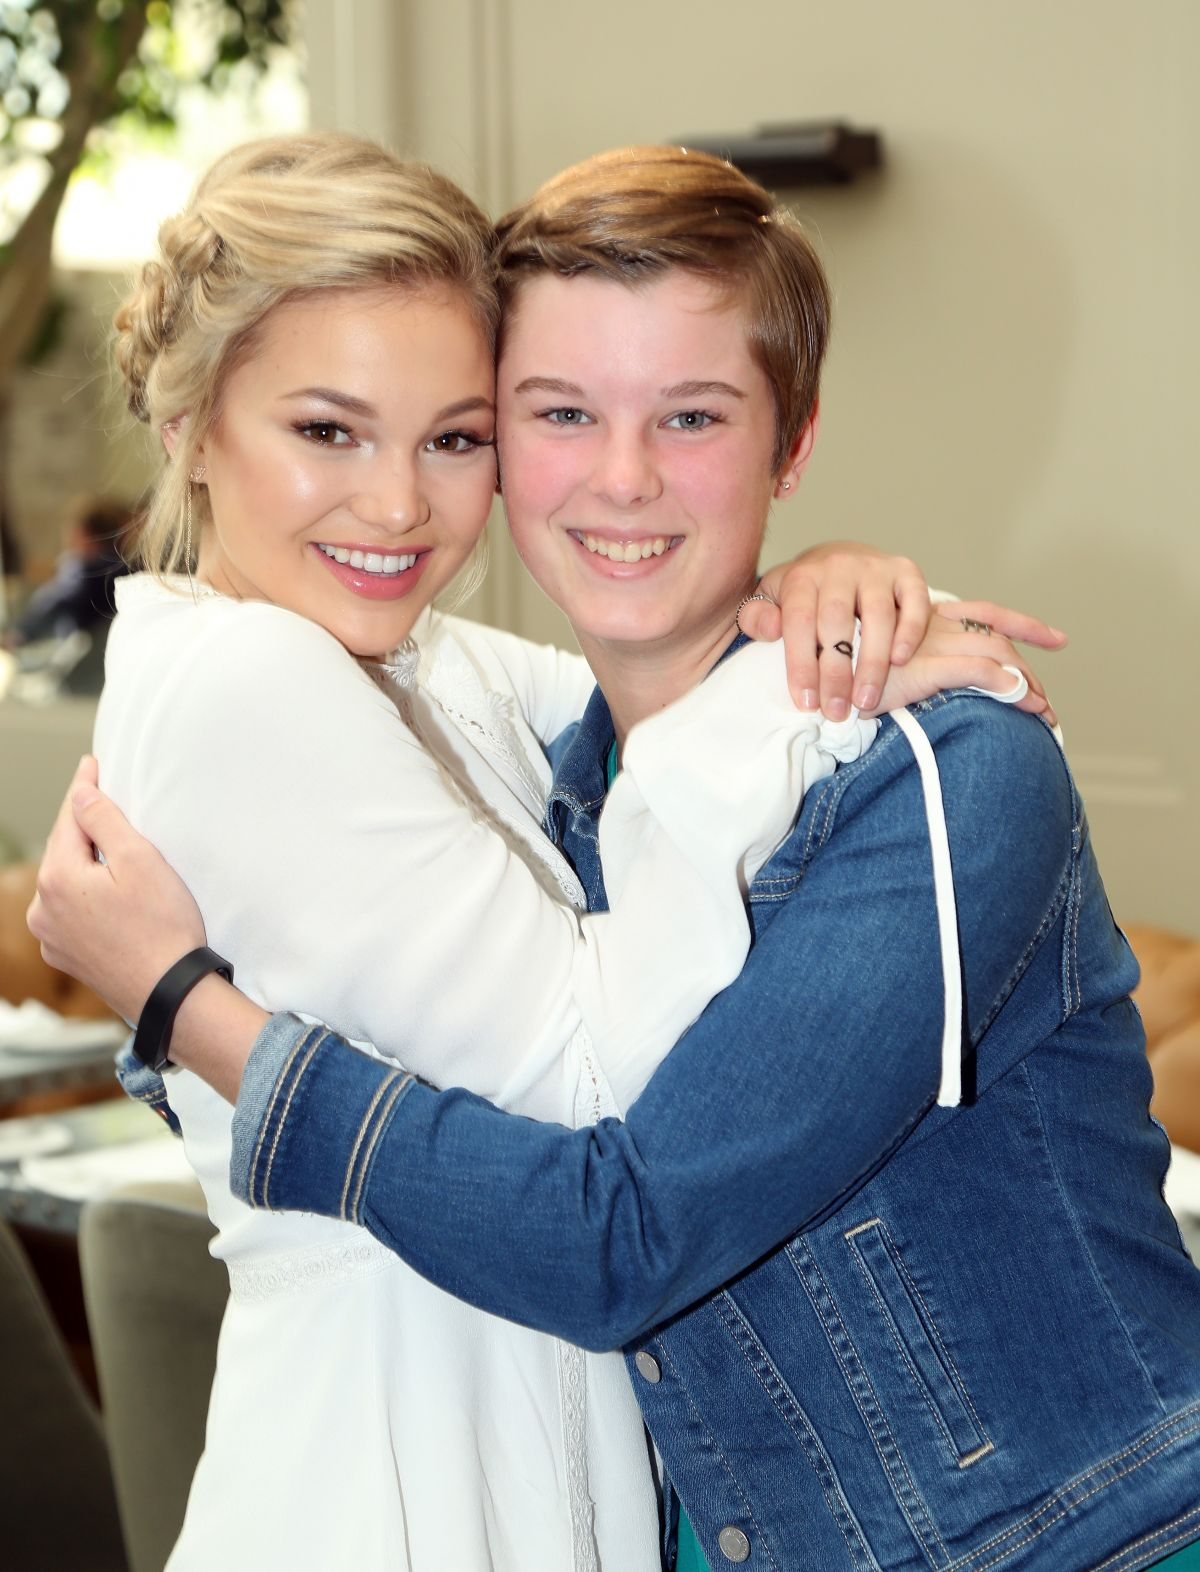 Olivia Holt At St. Jude Children's Research Hospital Luncheon in LA   olivia-holt-at-st.-jude-children-s-research-hospital-luncheon-in-la_6